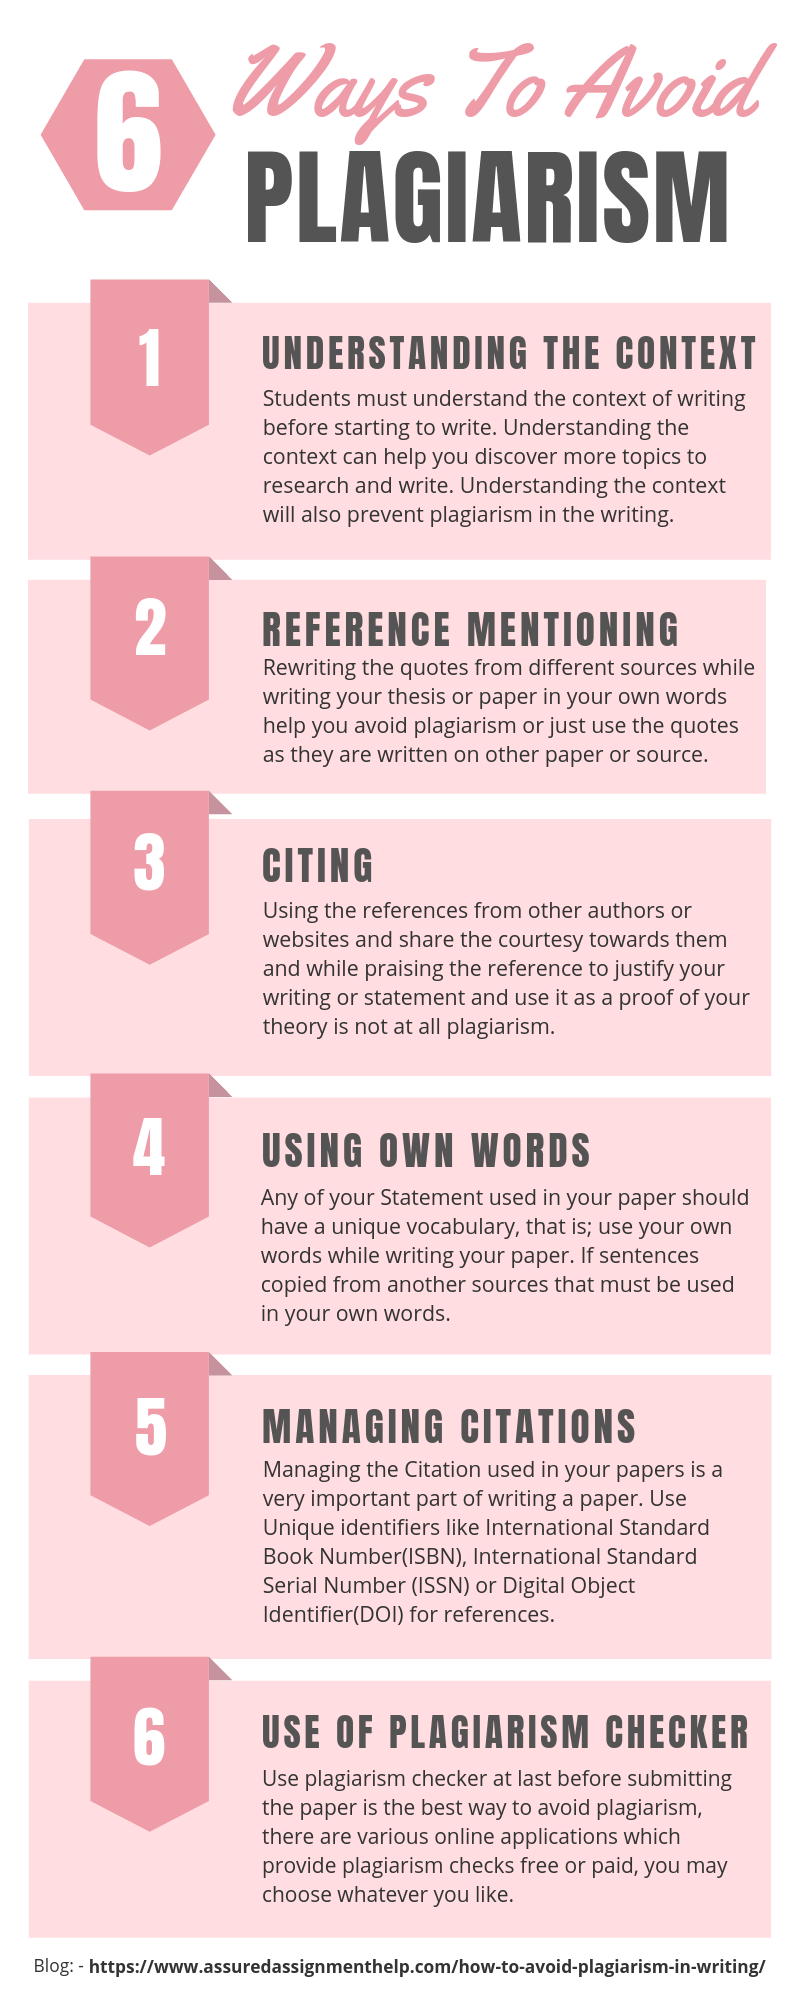 6 Ways To Avoid Plagiarism